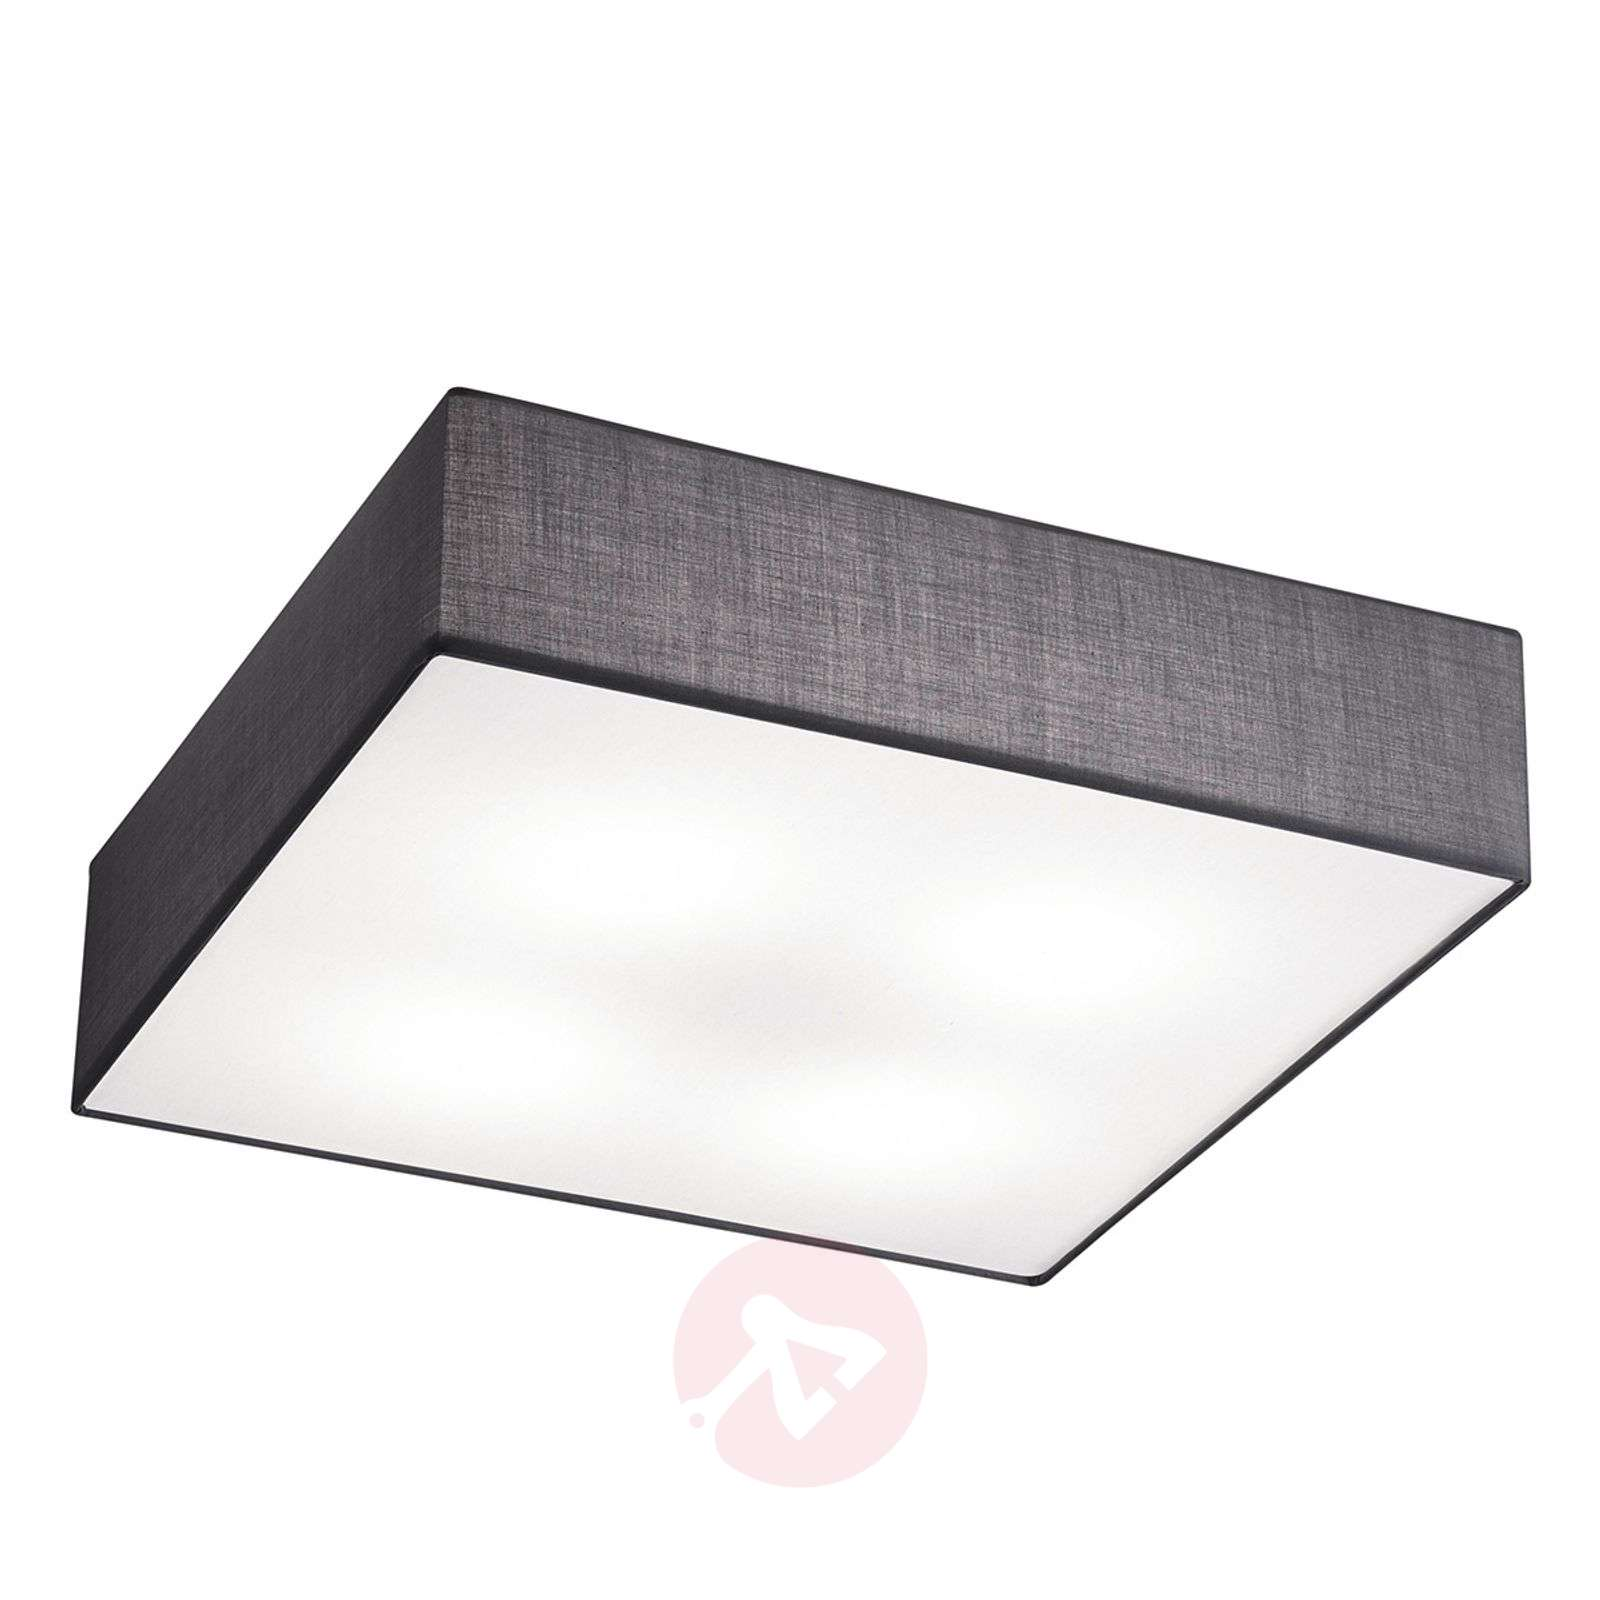 Embassy square ceiling light made of fabric-9004785-01